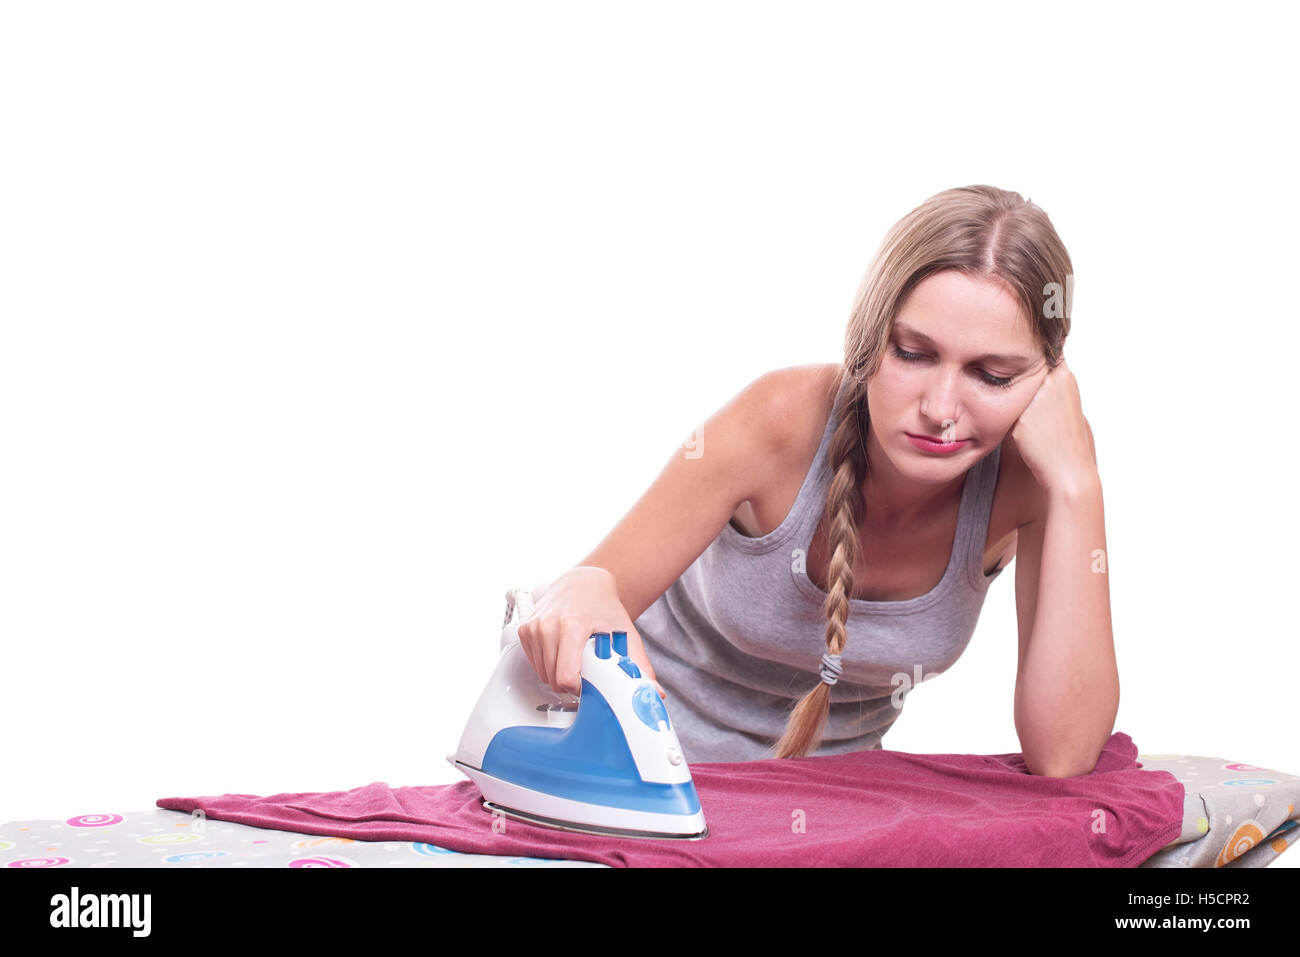 Bored sad young woman ironing clothes Stock Photo